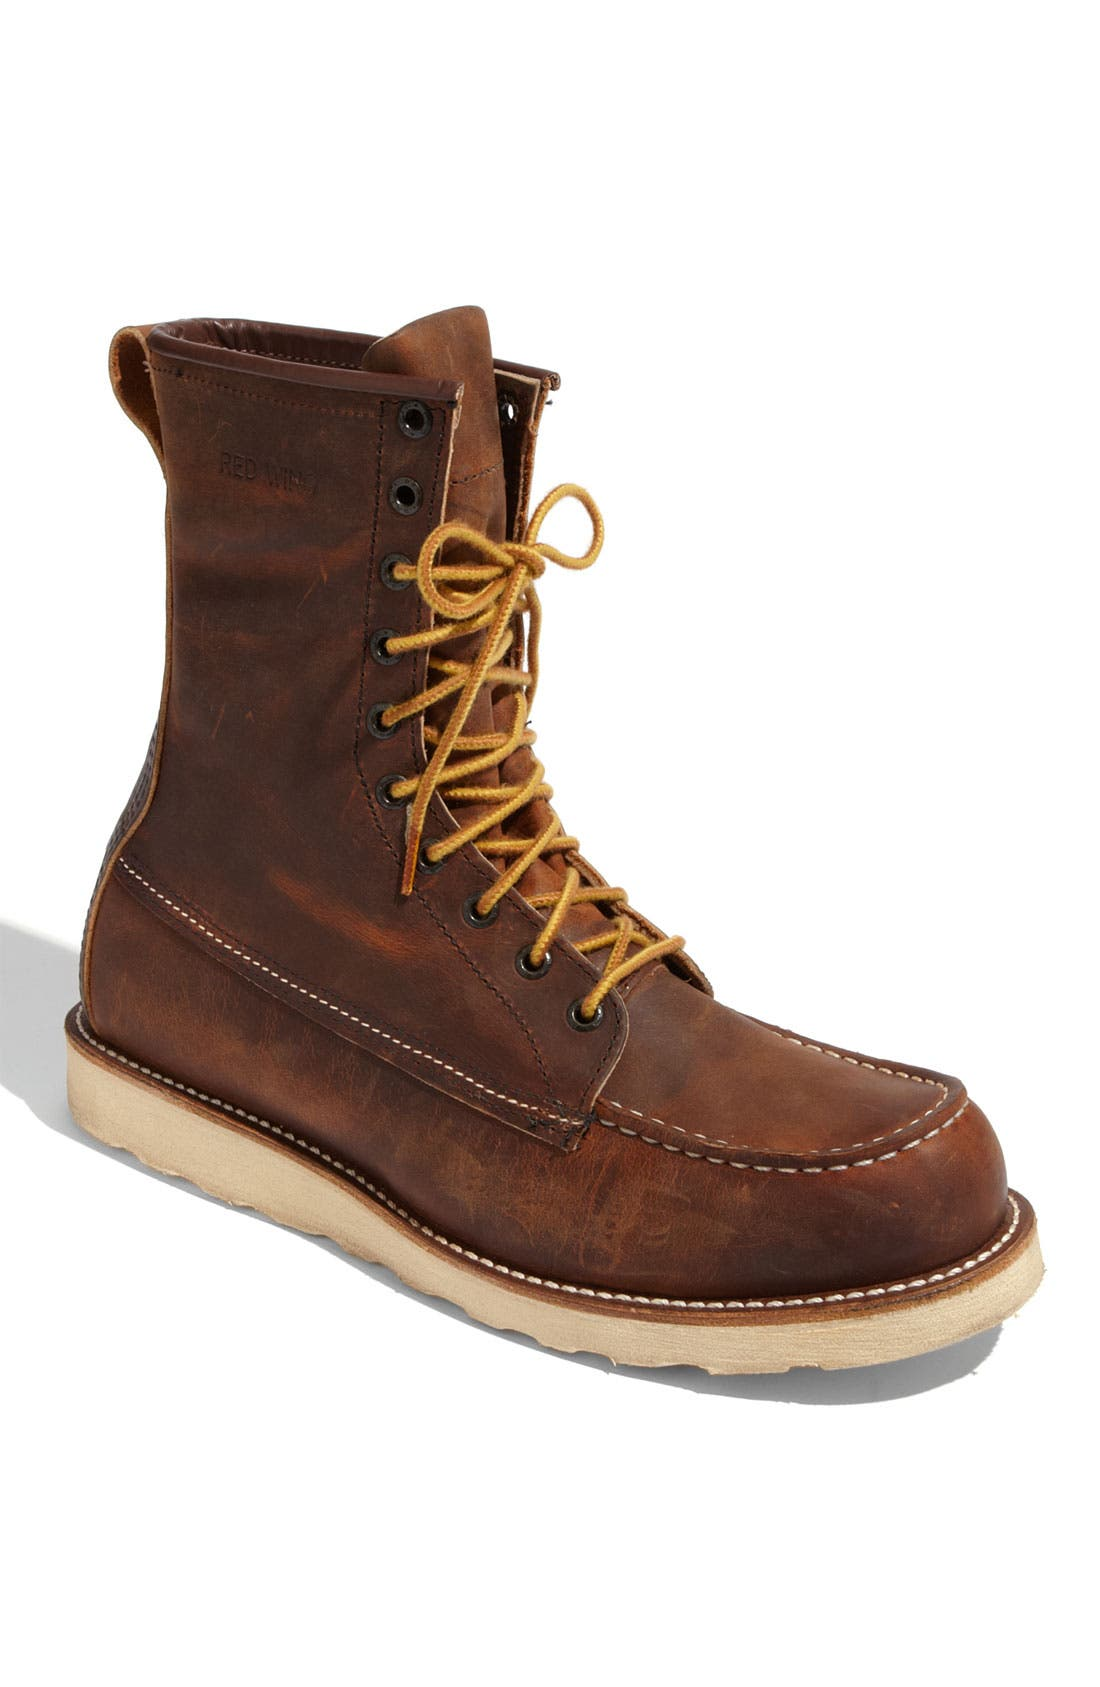 Main Image - Red Wing 'Moc' Boot